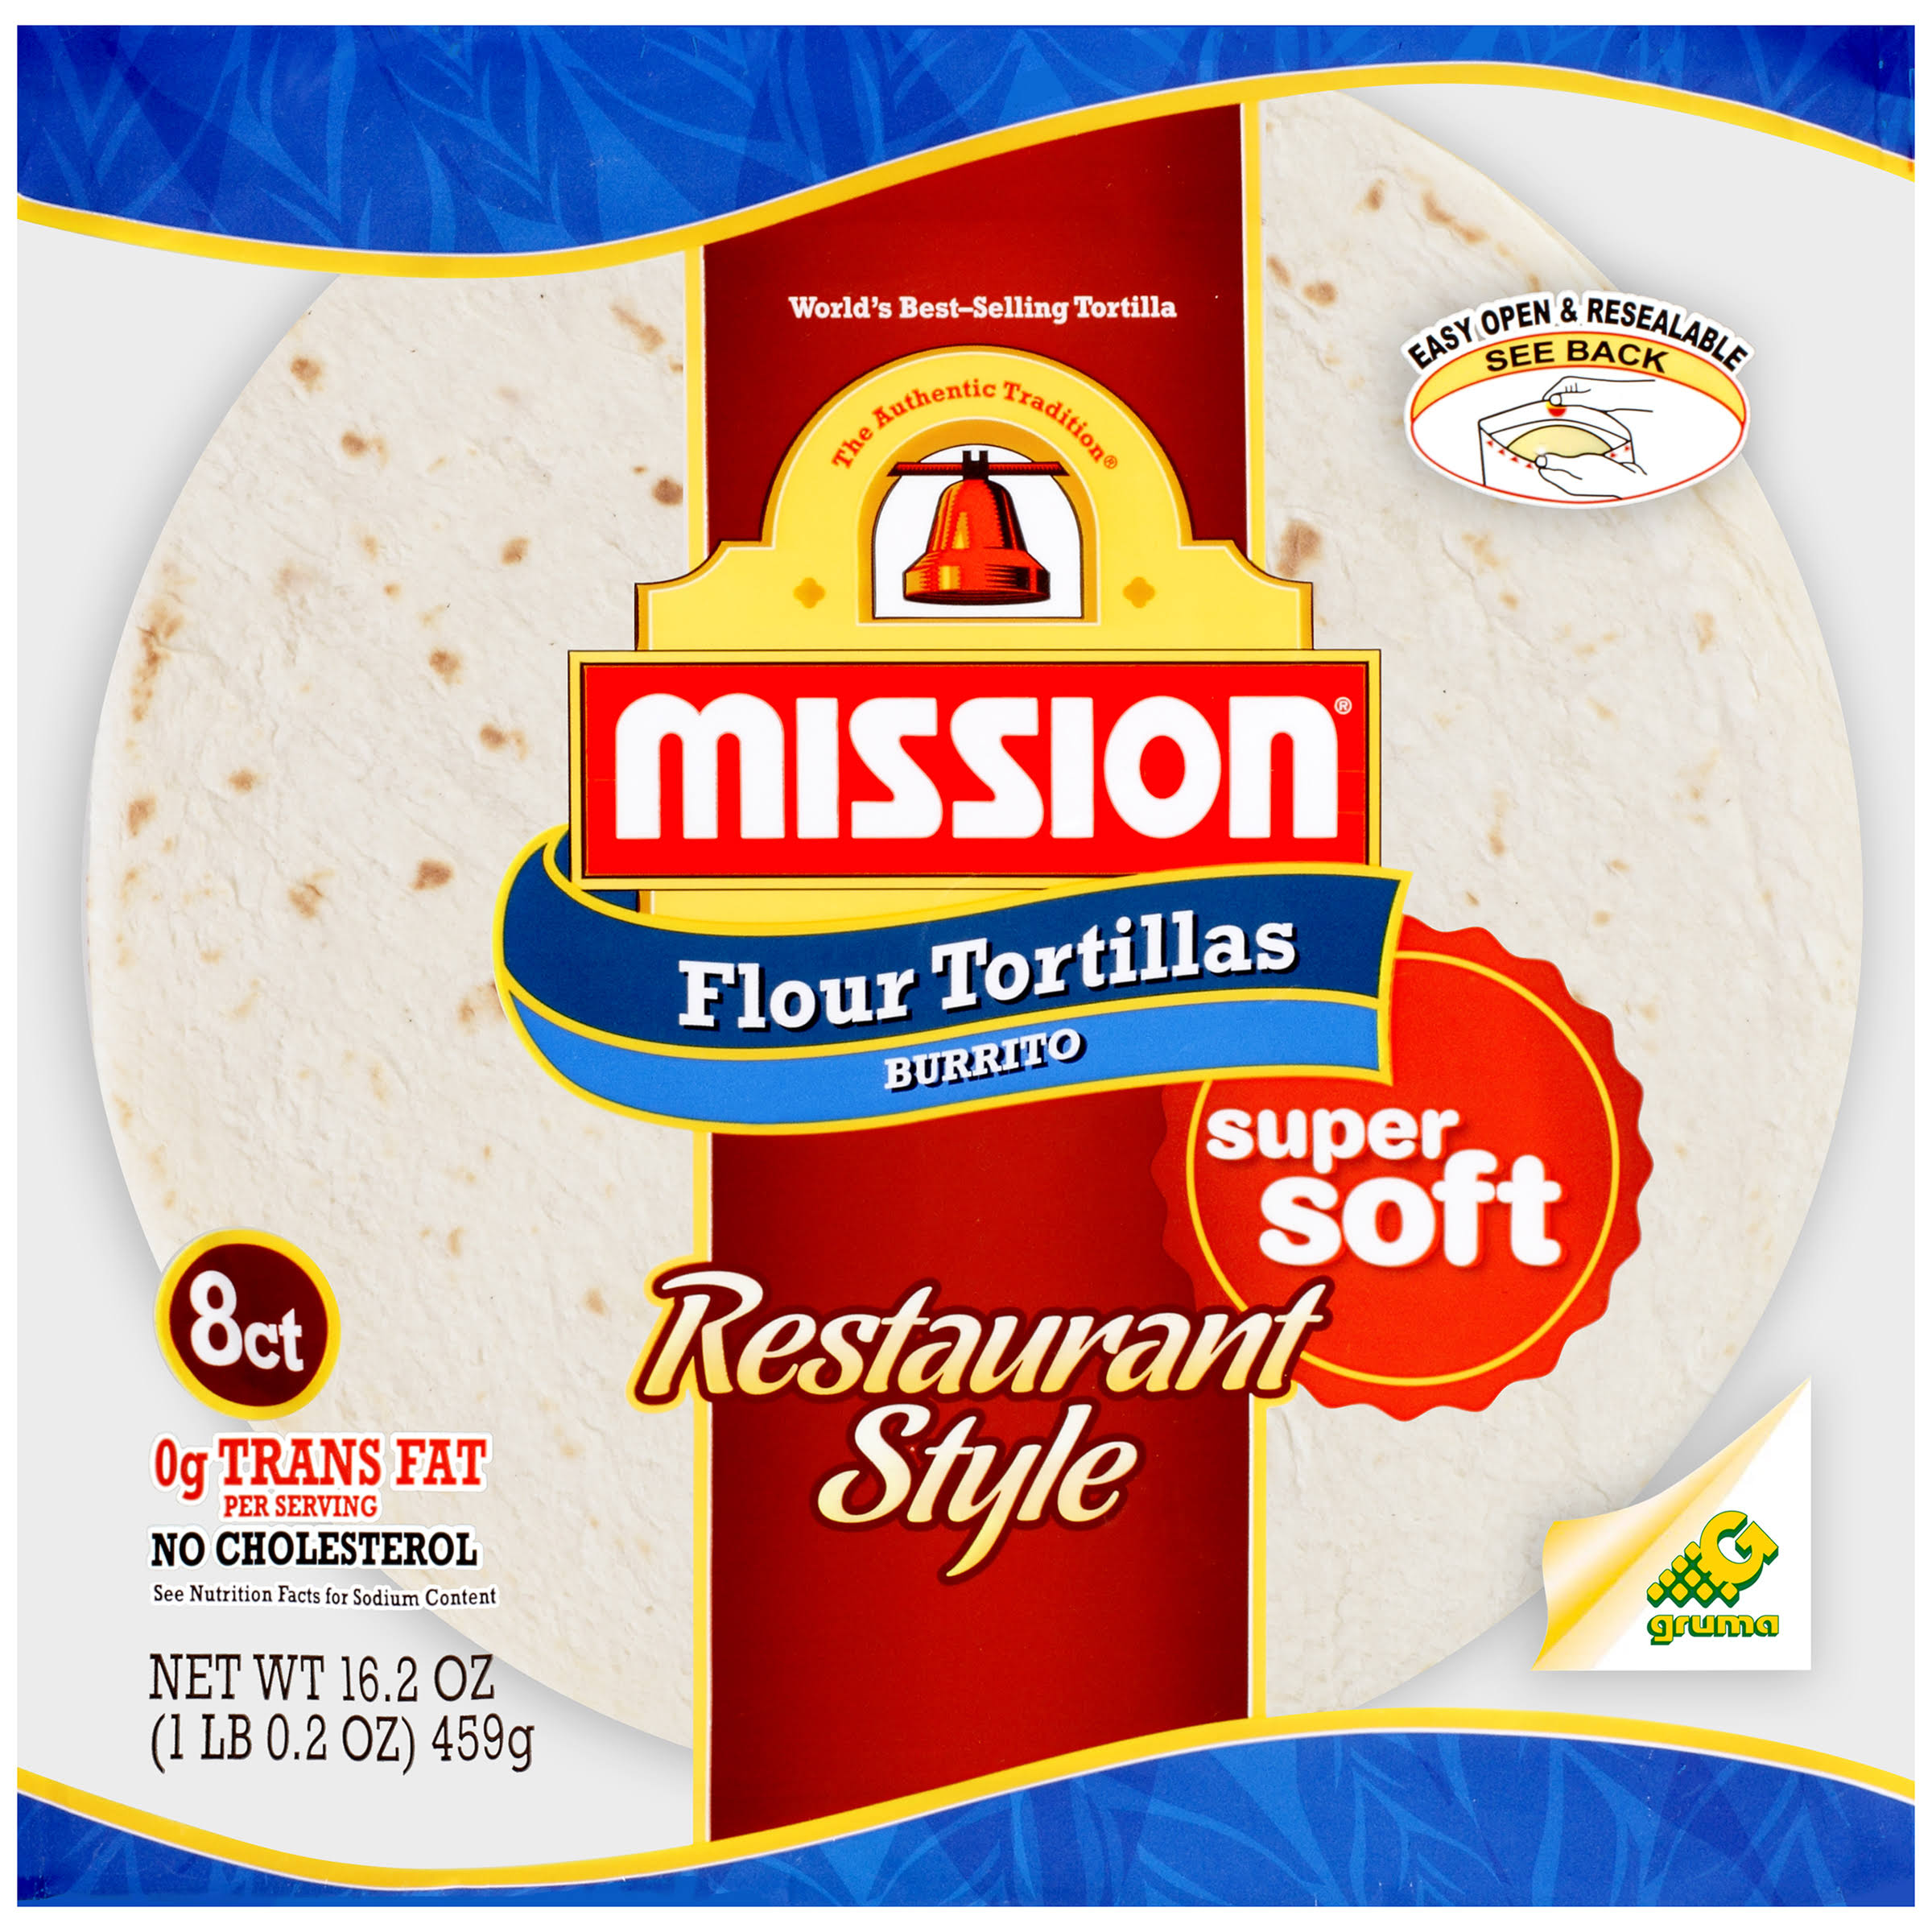 Mission Flour Tortillas - Restaurant Style, 16.2oz